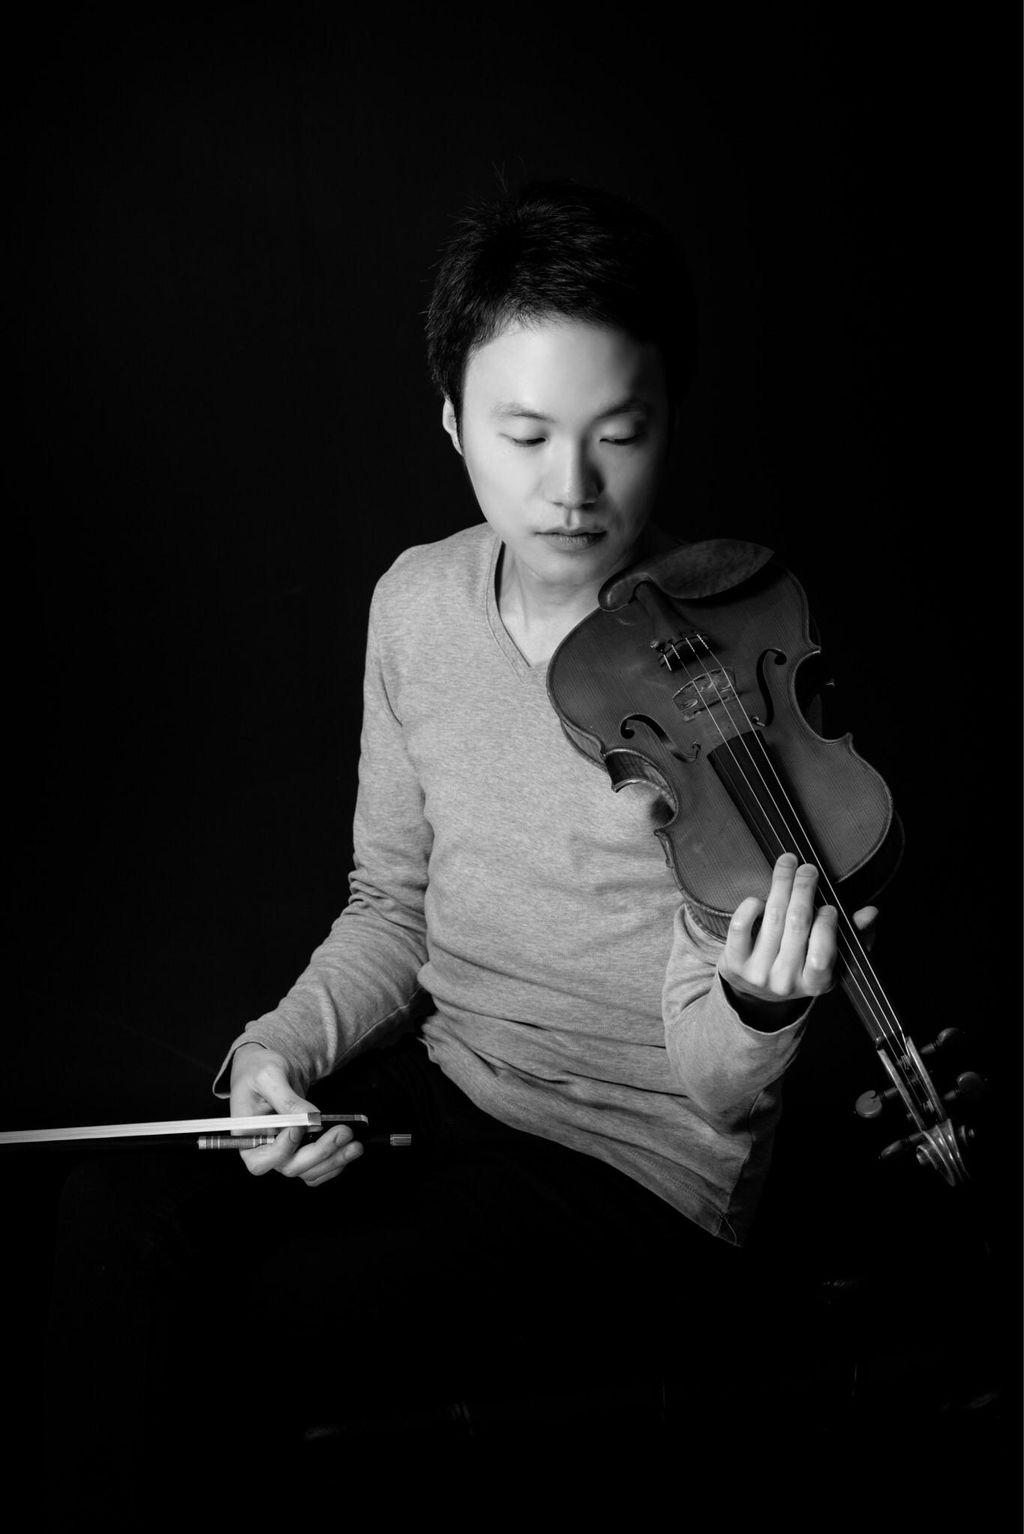 Violin lessons & practice coaching